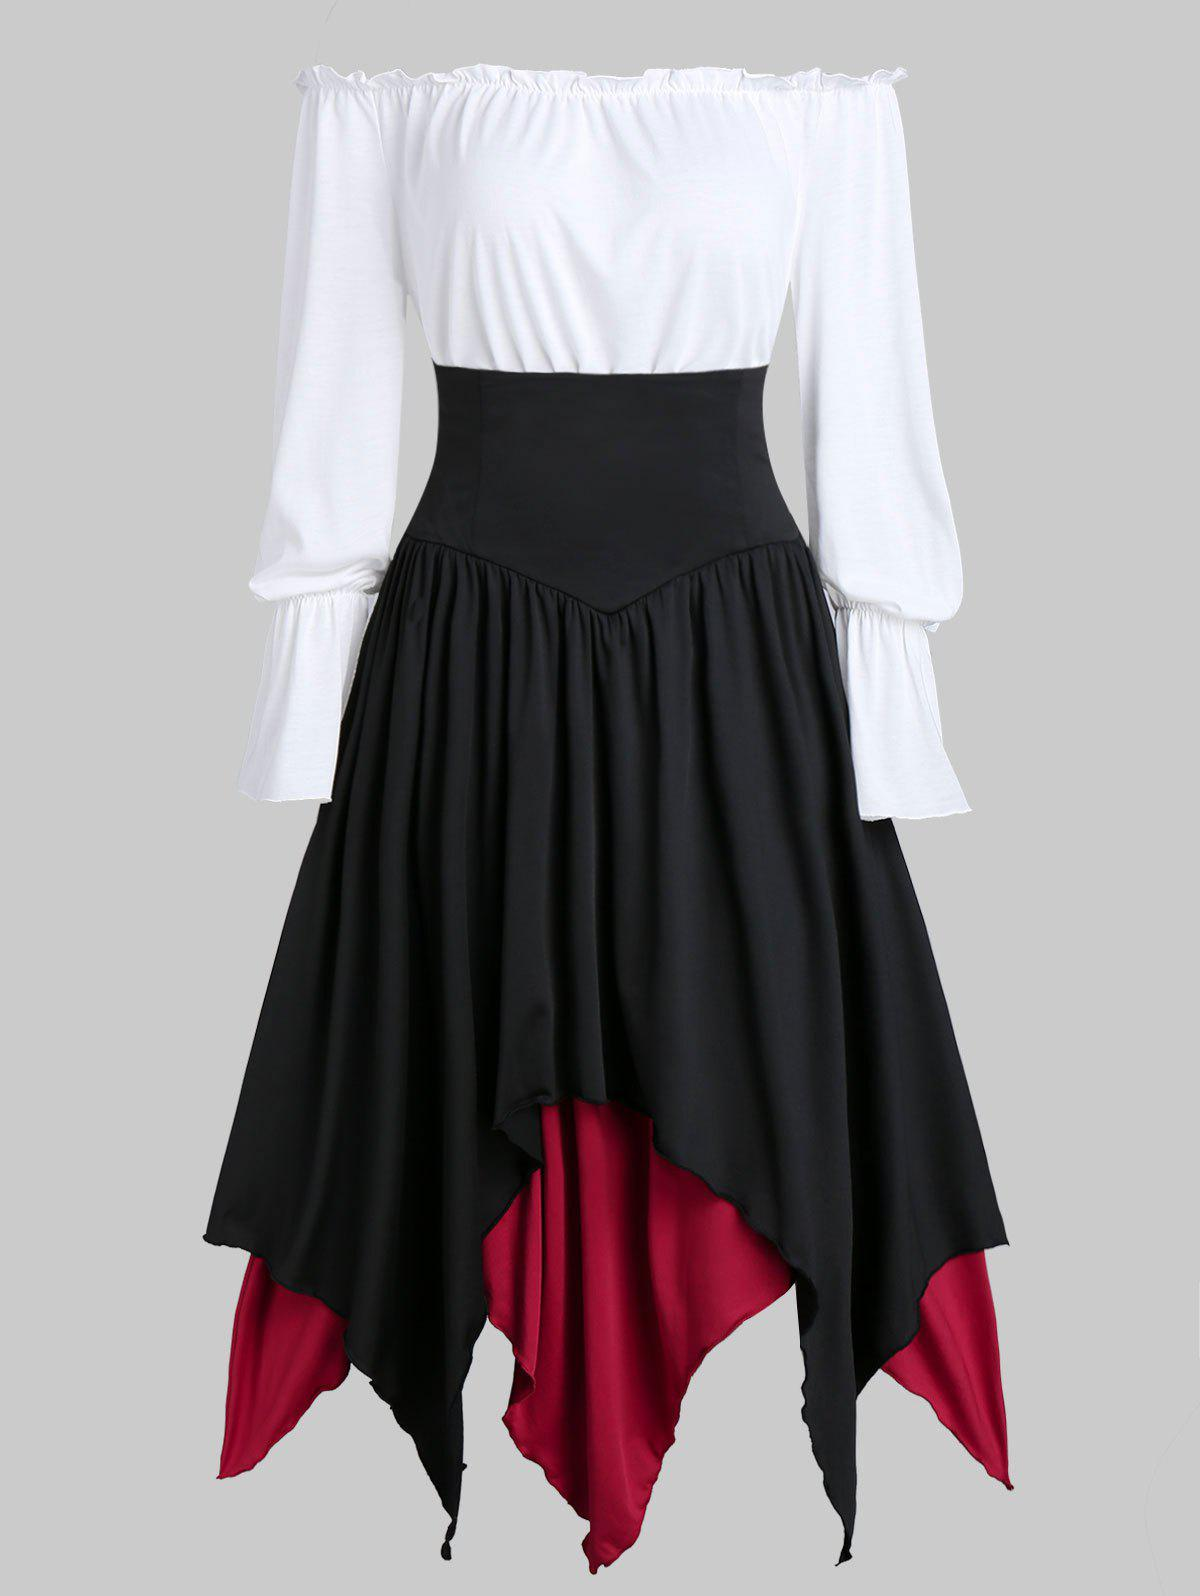 New Lace-up Contrast Layered Handkerchief Midi Skirt with Plain Bardot Top